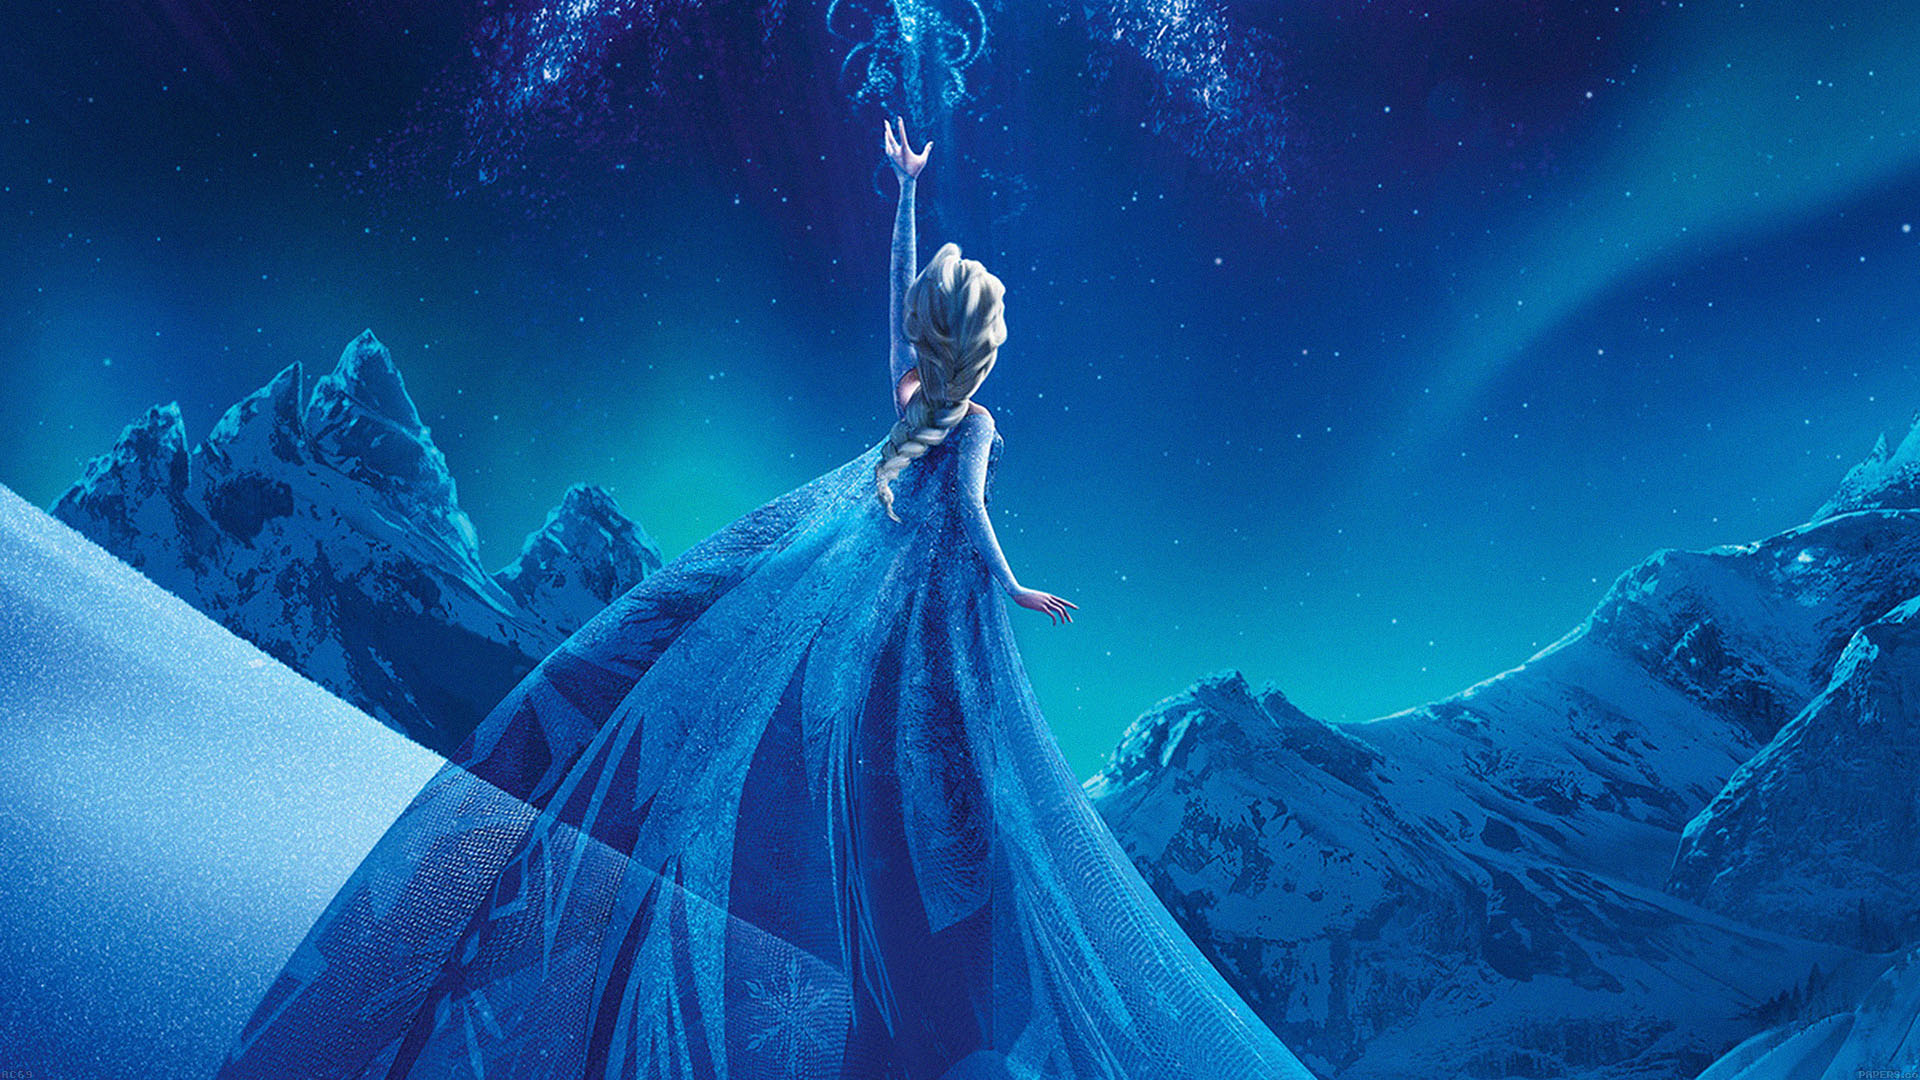 ac69-wallpaper-elsa-frozen-queen-disney-illust-snow-art